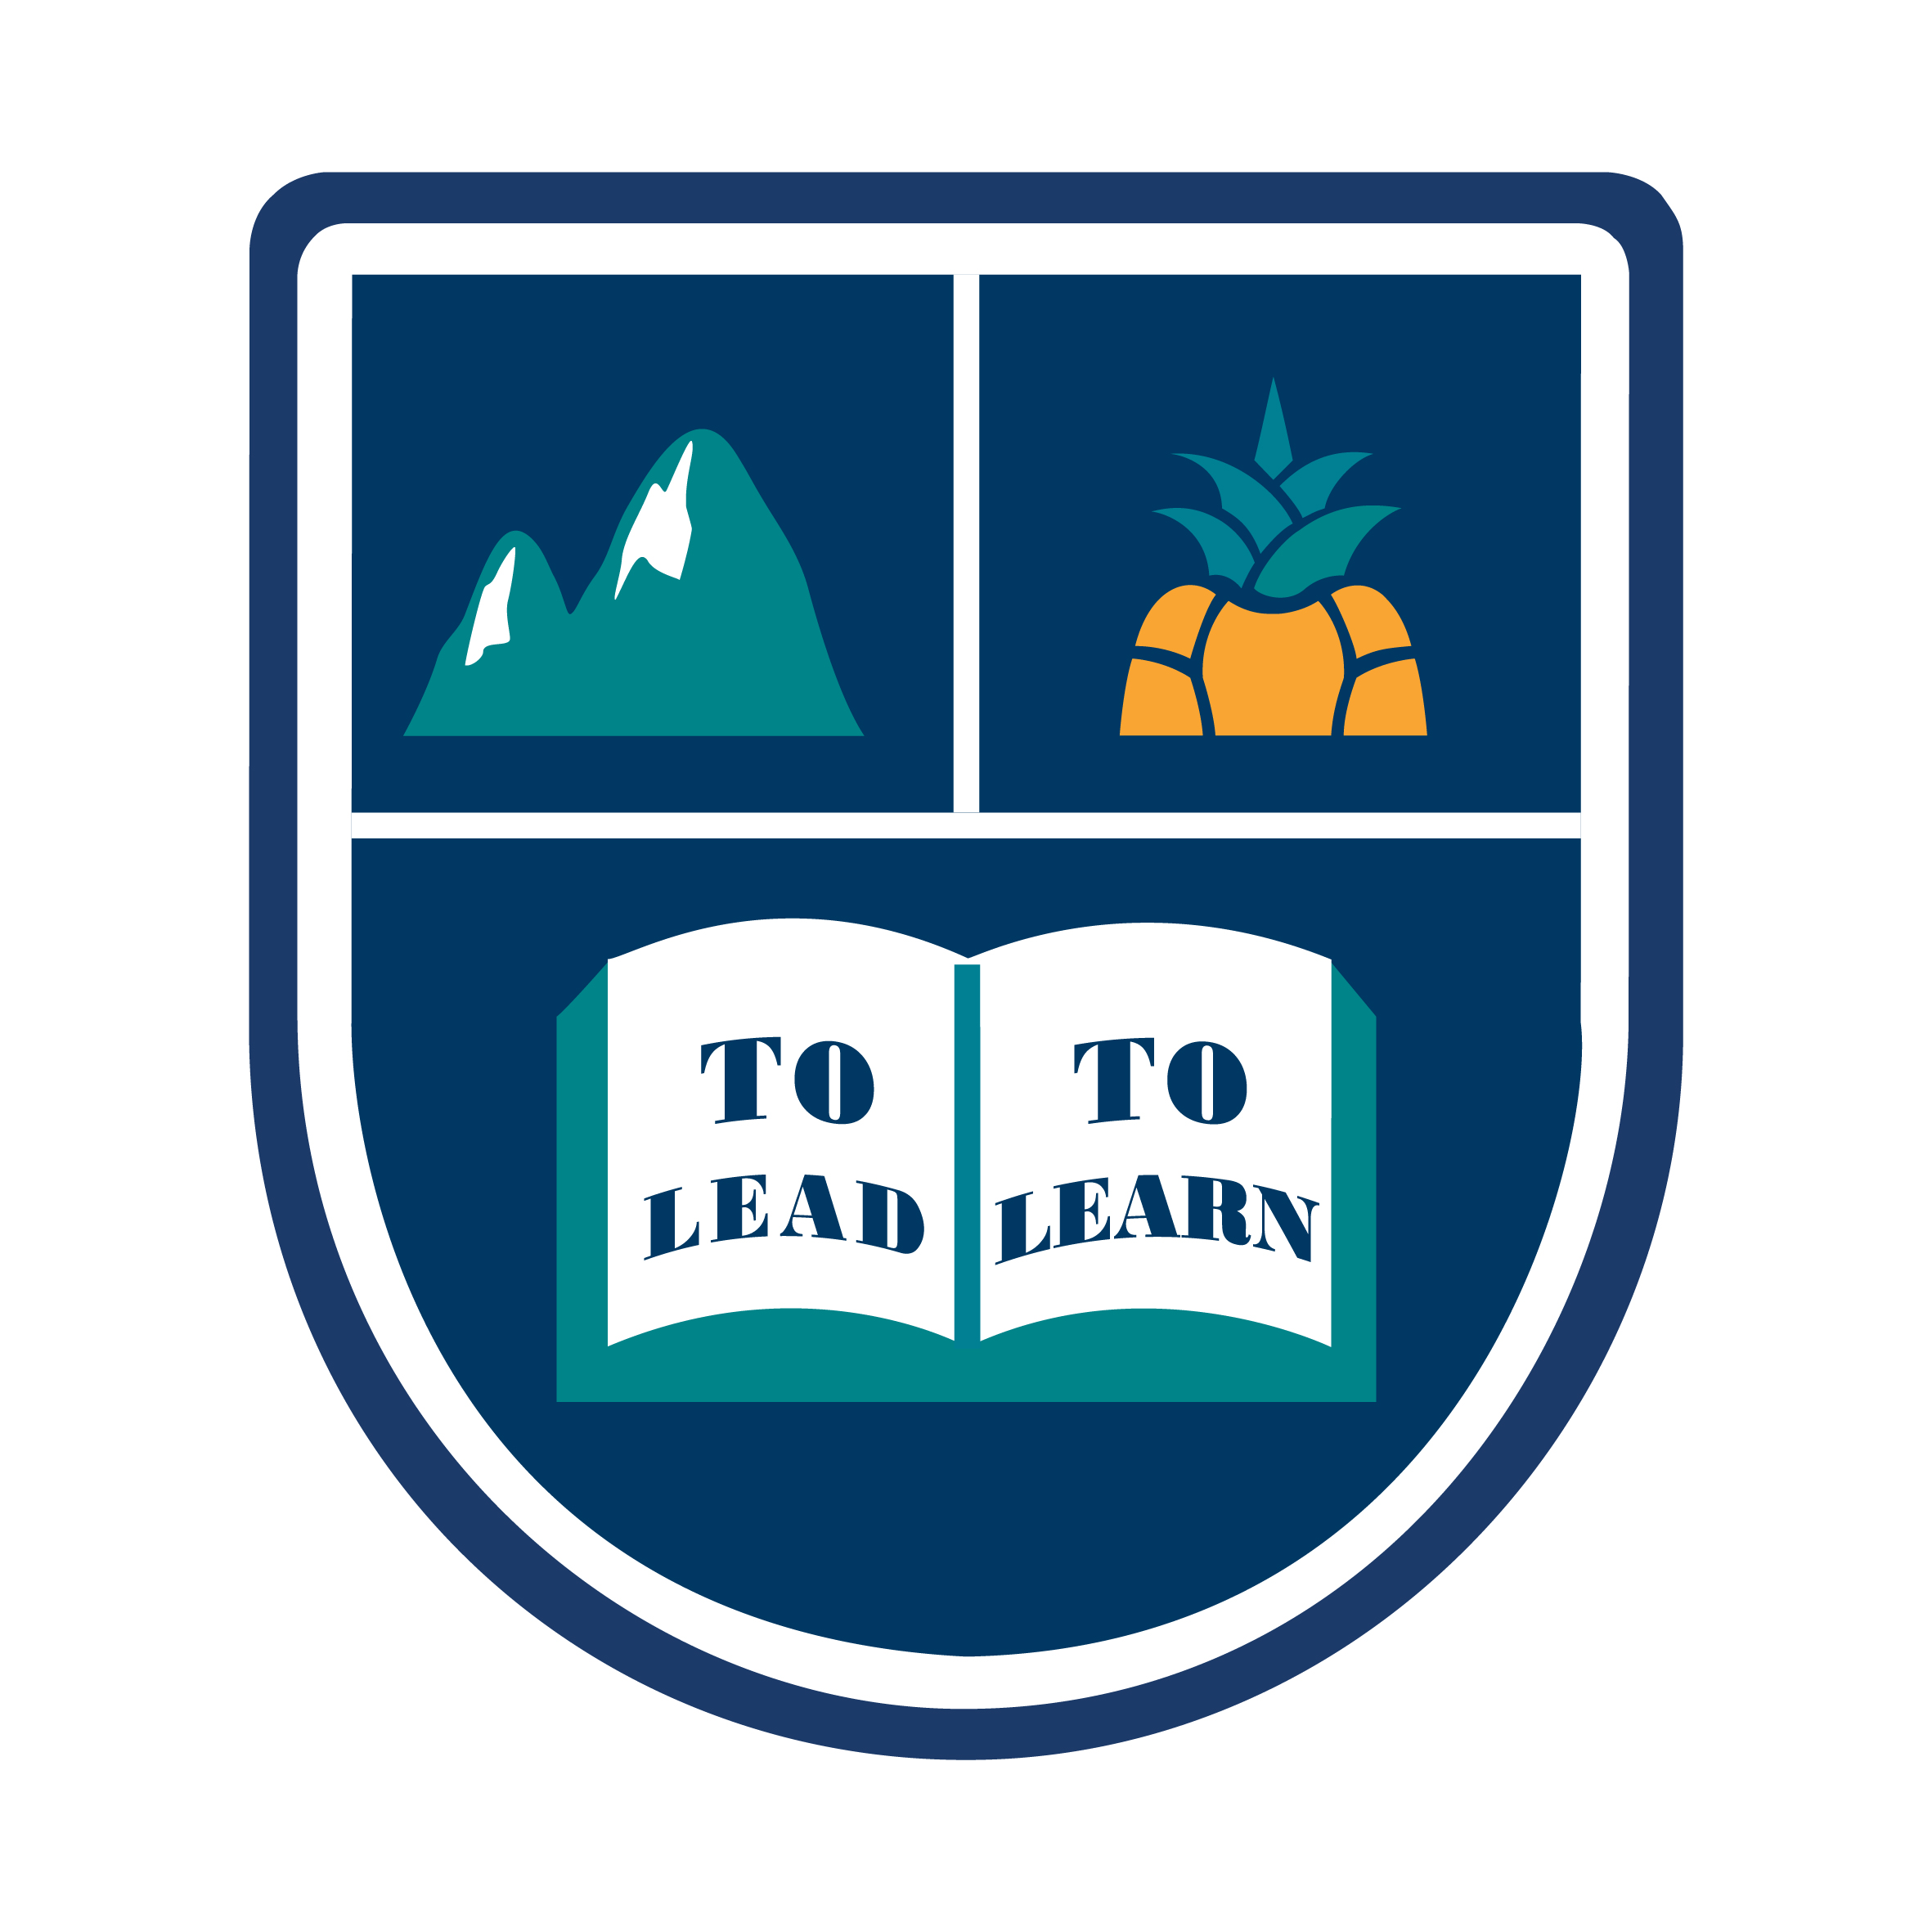 Hospitality in Leading & Learning